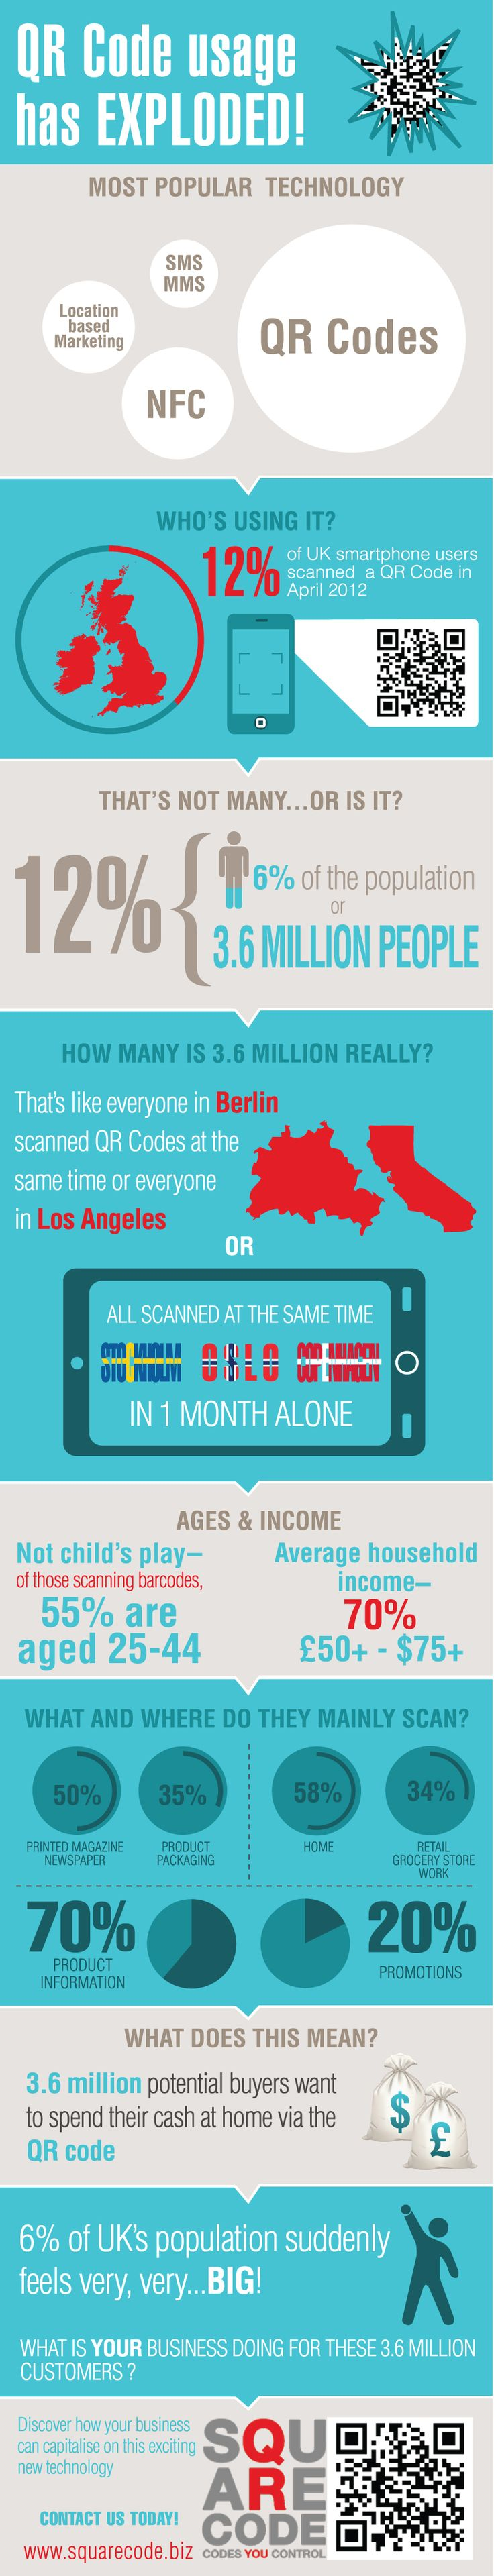 Predictions Came True: QR Codes Usage Has Taken Off: QR Code Usage in the UK 2012